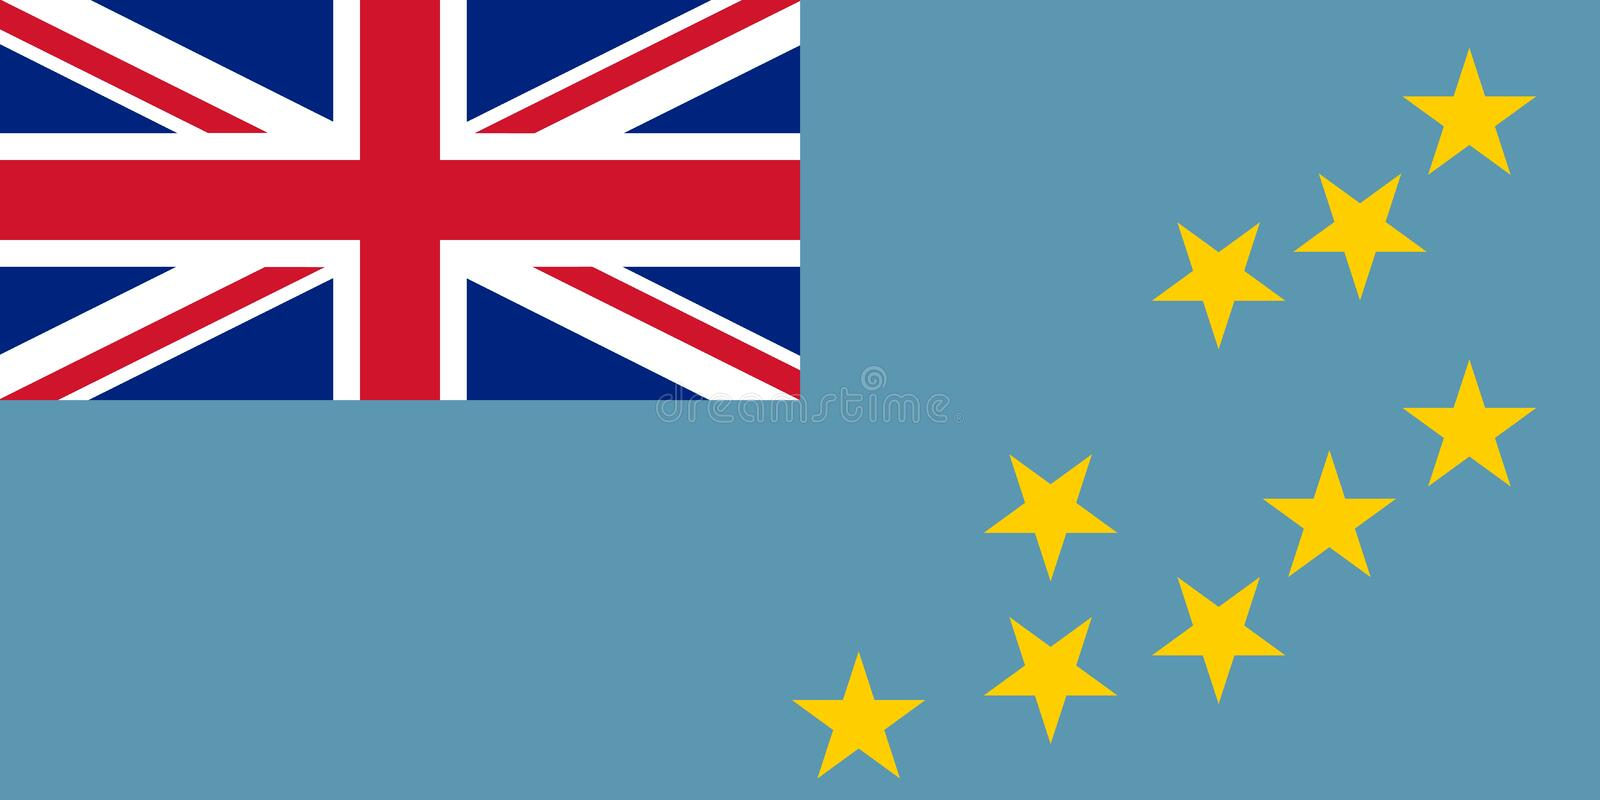 Flag of Tuvalu official colors and proportions, vector image. Flag of Tuvalu official colors and proportions, vector image vector illustration